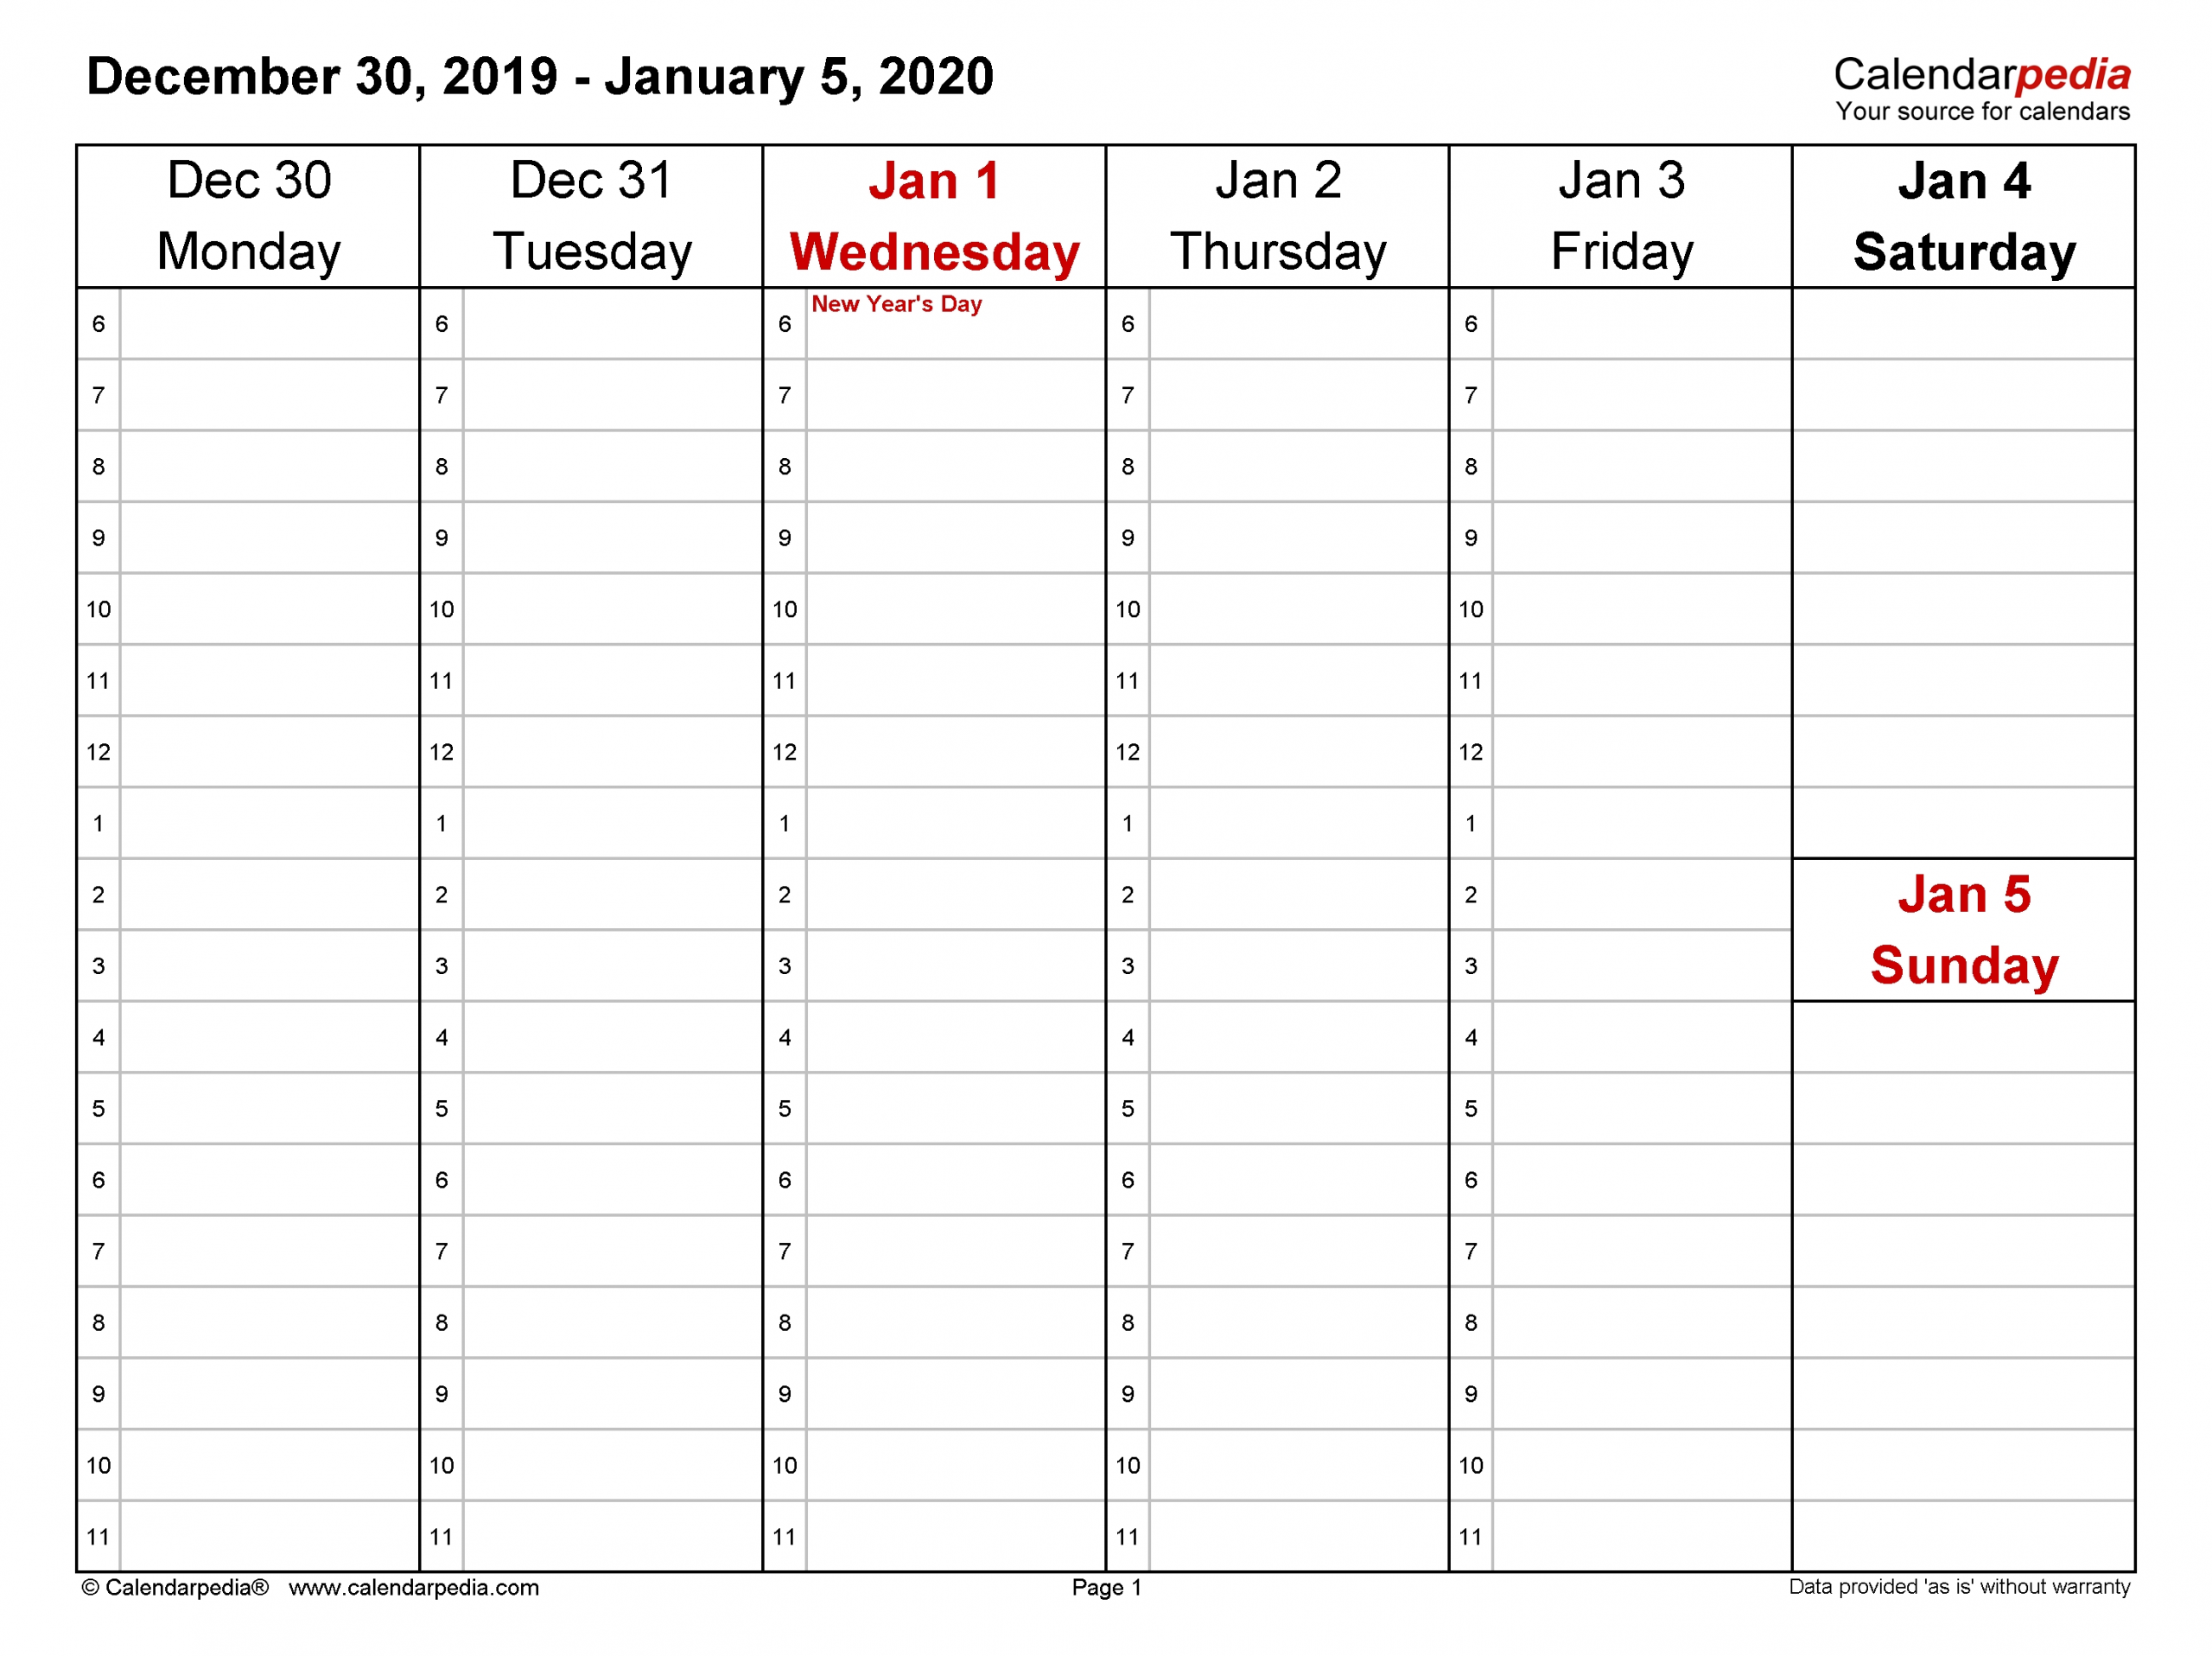 Weekly Calendars 2020 For Pdf - 12 Free Printable Templates with regard to 2019 Printable Weekly Nfl Schedule Pdf